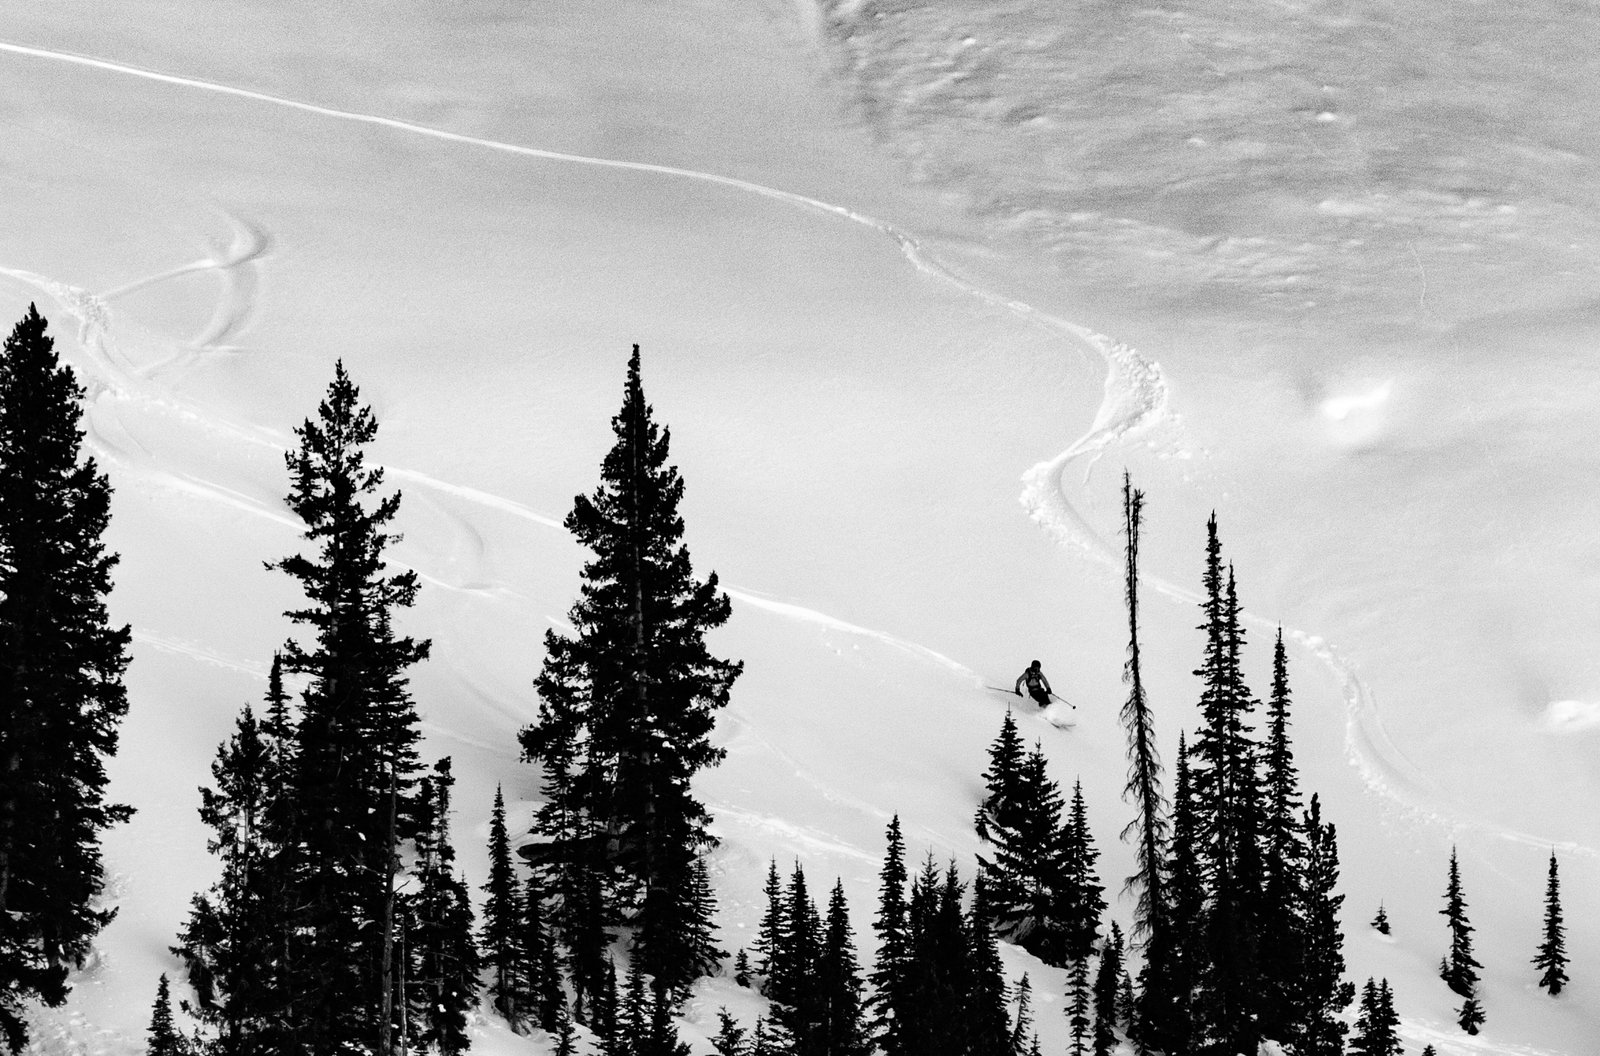 Treeskiing the Idaho Backcountry